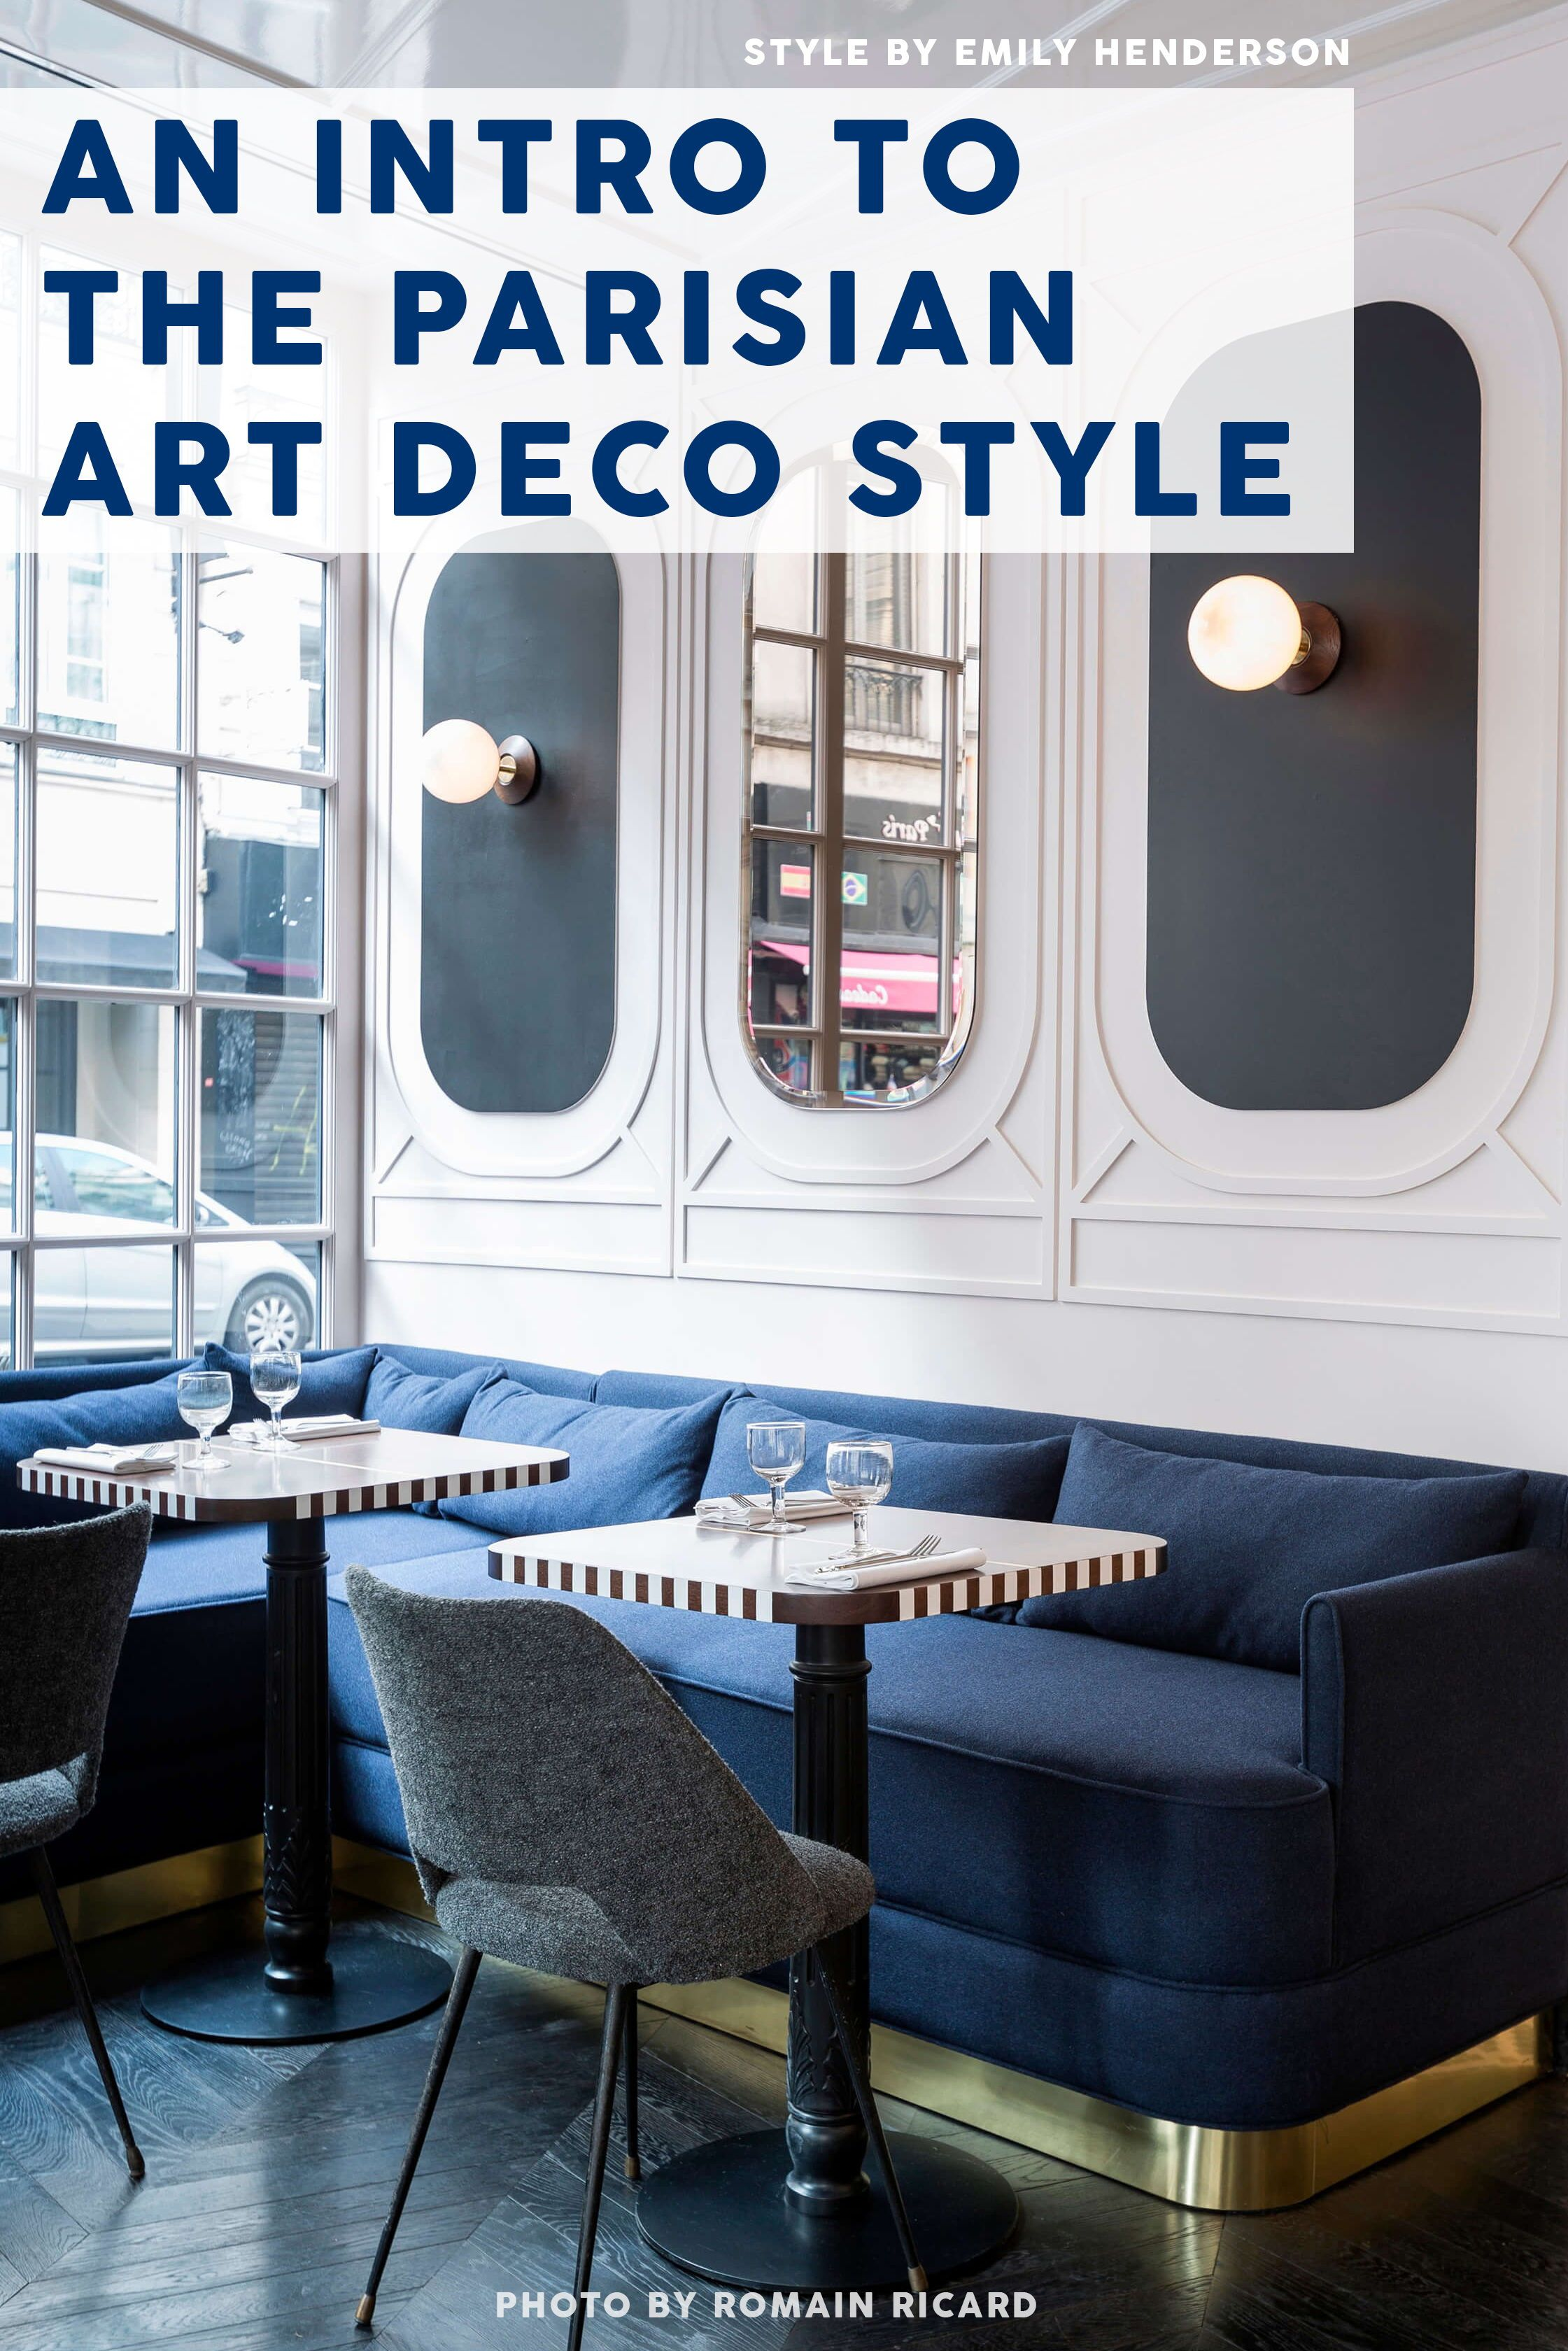 decor and design 9 art deco style emerald interiors blog An Intro to the Parisian Art Deco Style | Emily Henderson #interiordesign